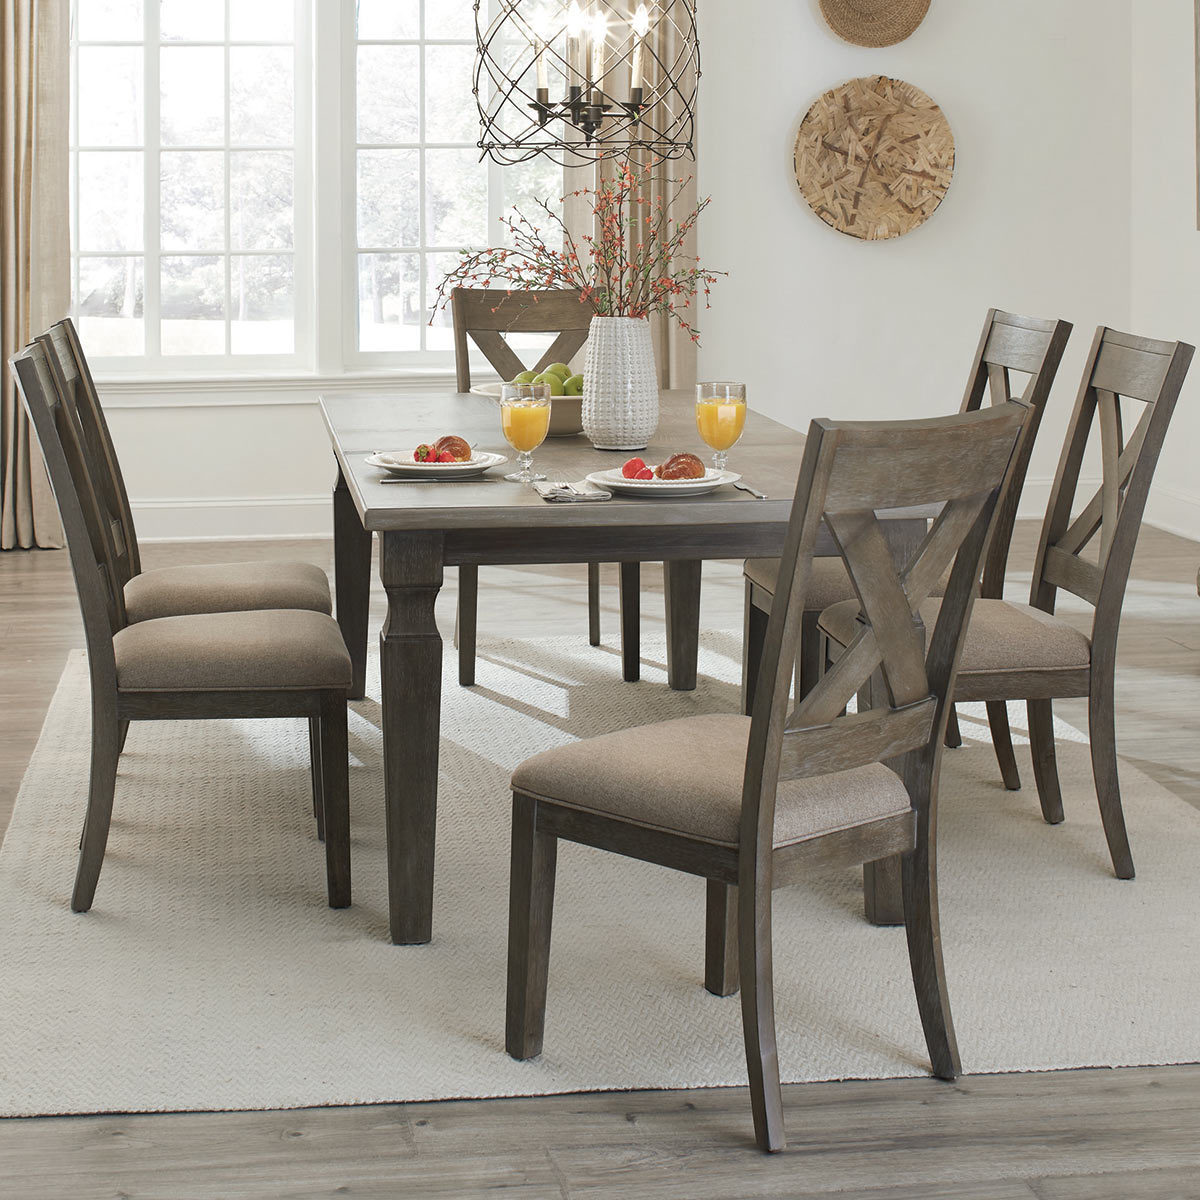 Costco Tables And Chairs Universal Furniture Eileen Extending Dining Room Table 6 Chairs Costco Uk